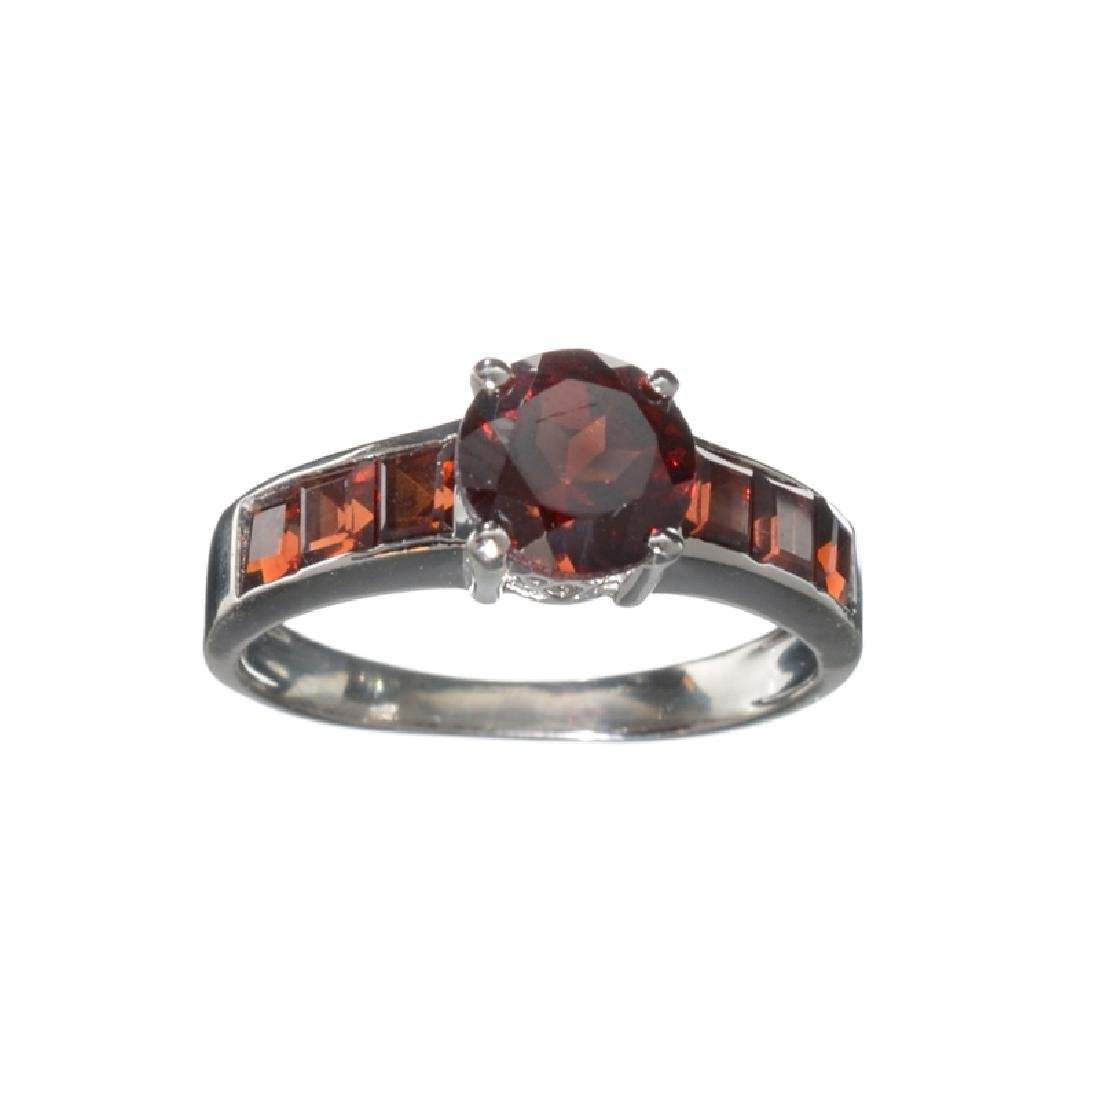 APP: 0.3k Fine Jewelry 2.90CT Almandite Garnet And